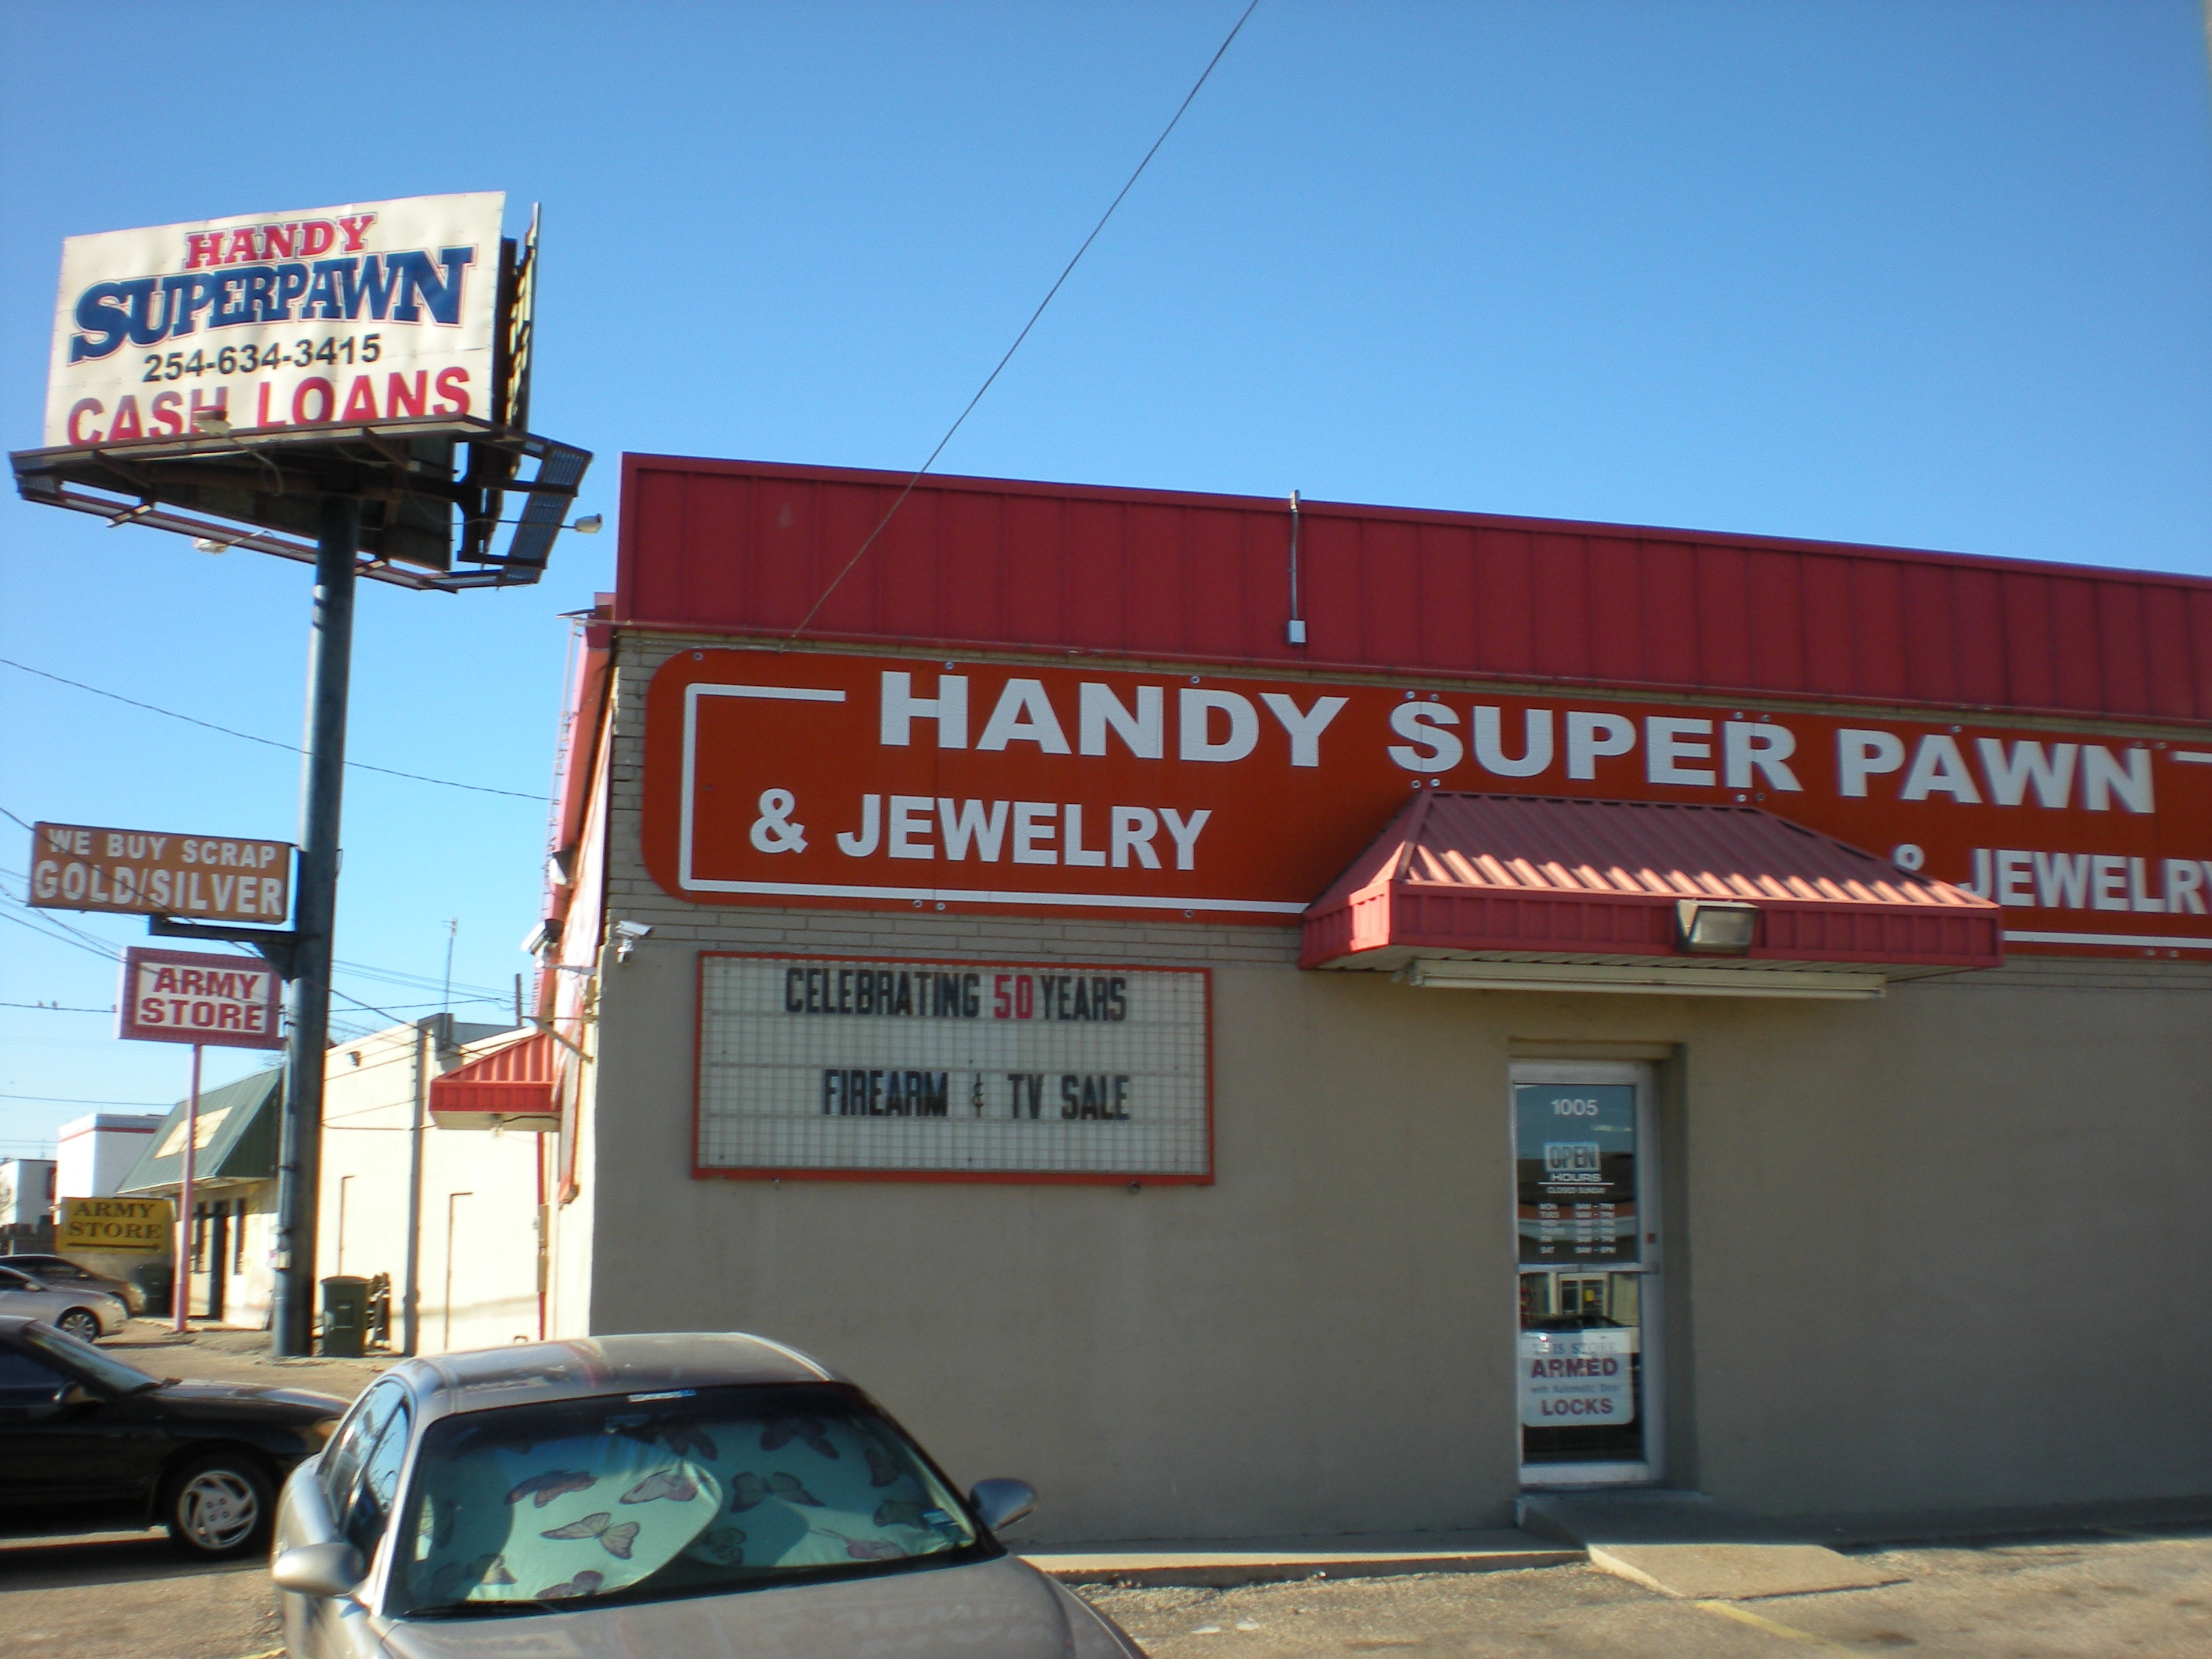 Handy Super Pawn in Killeen, TX 76541 - ChamberofCommerce.com